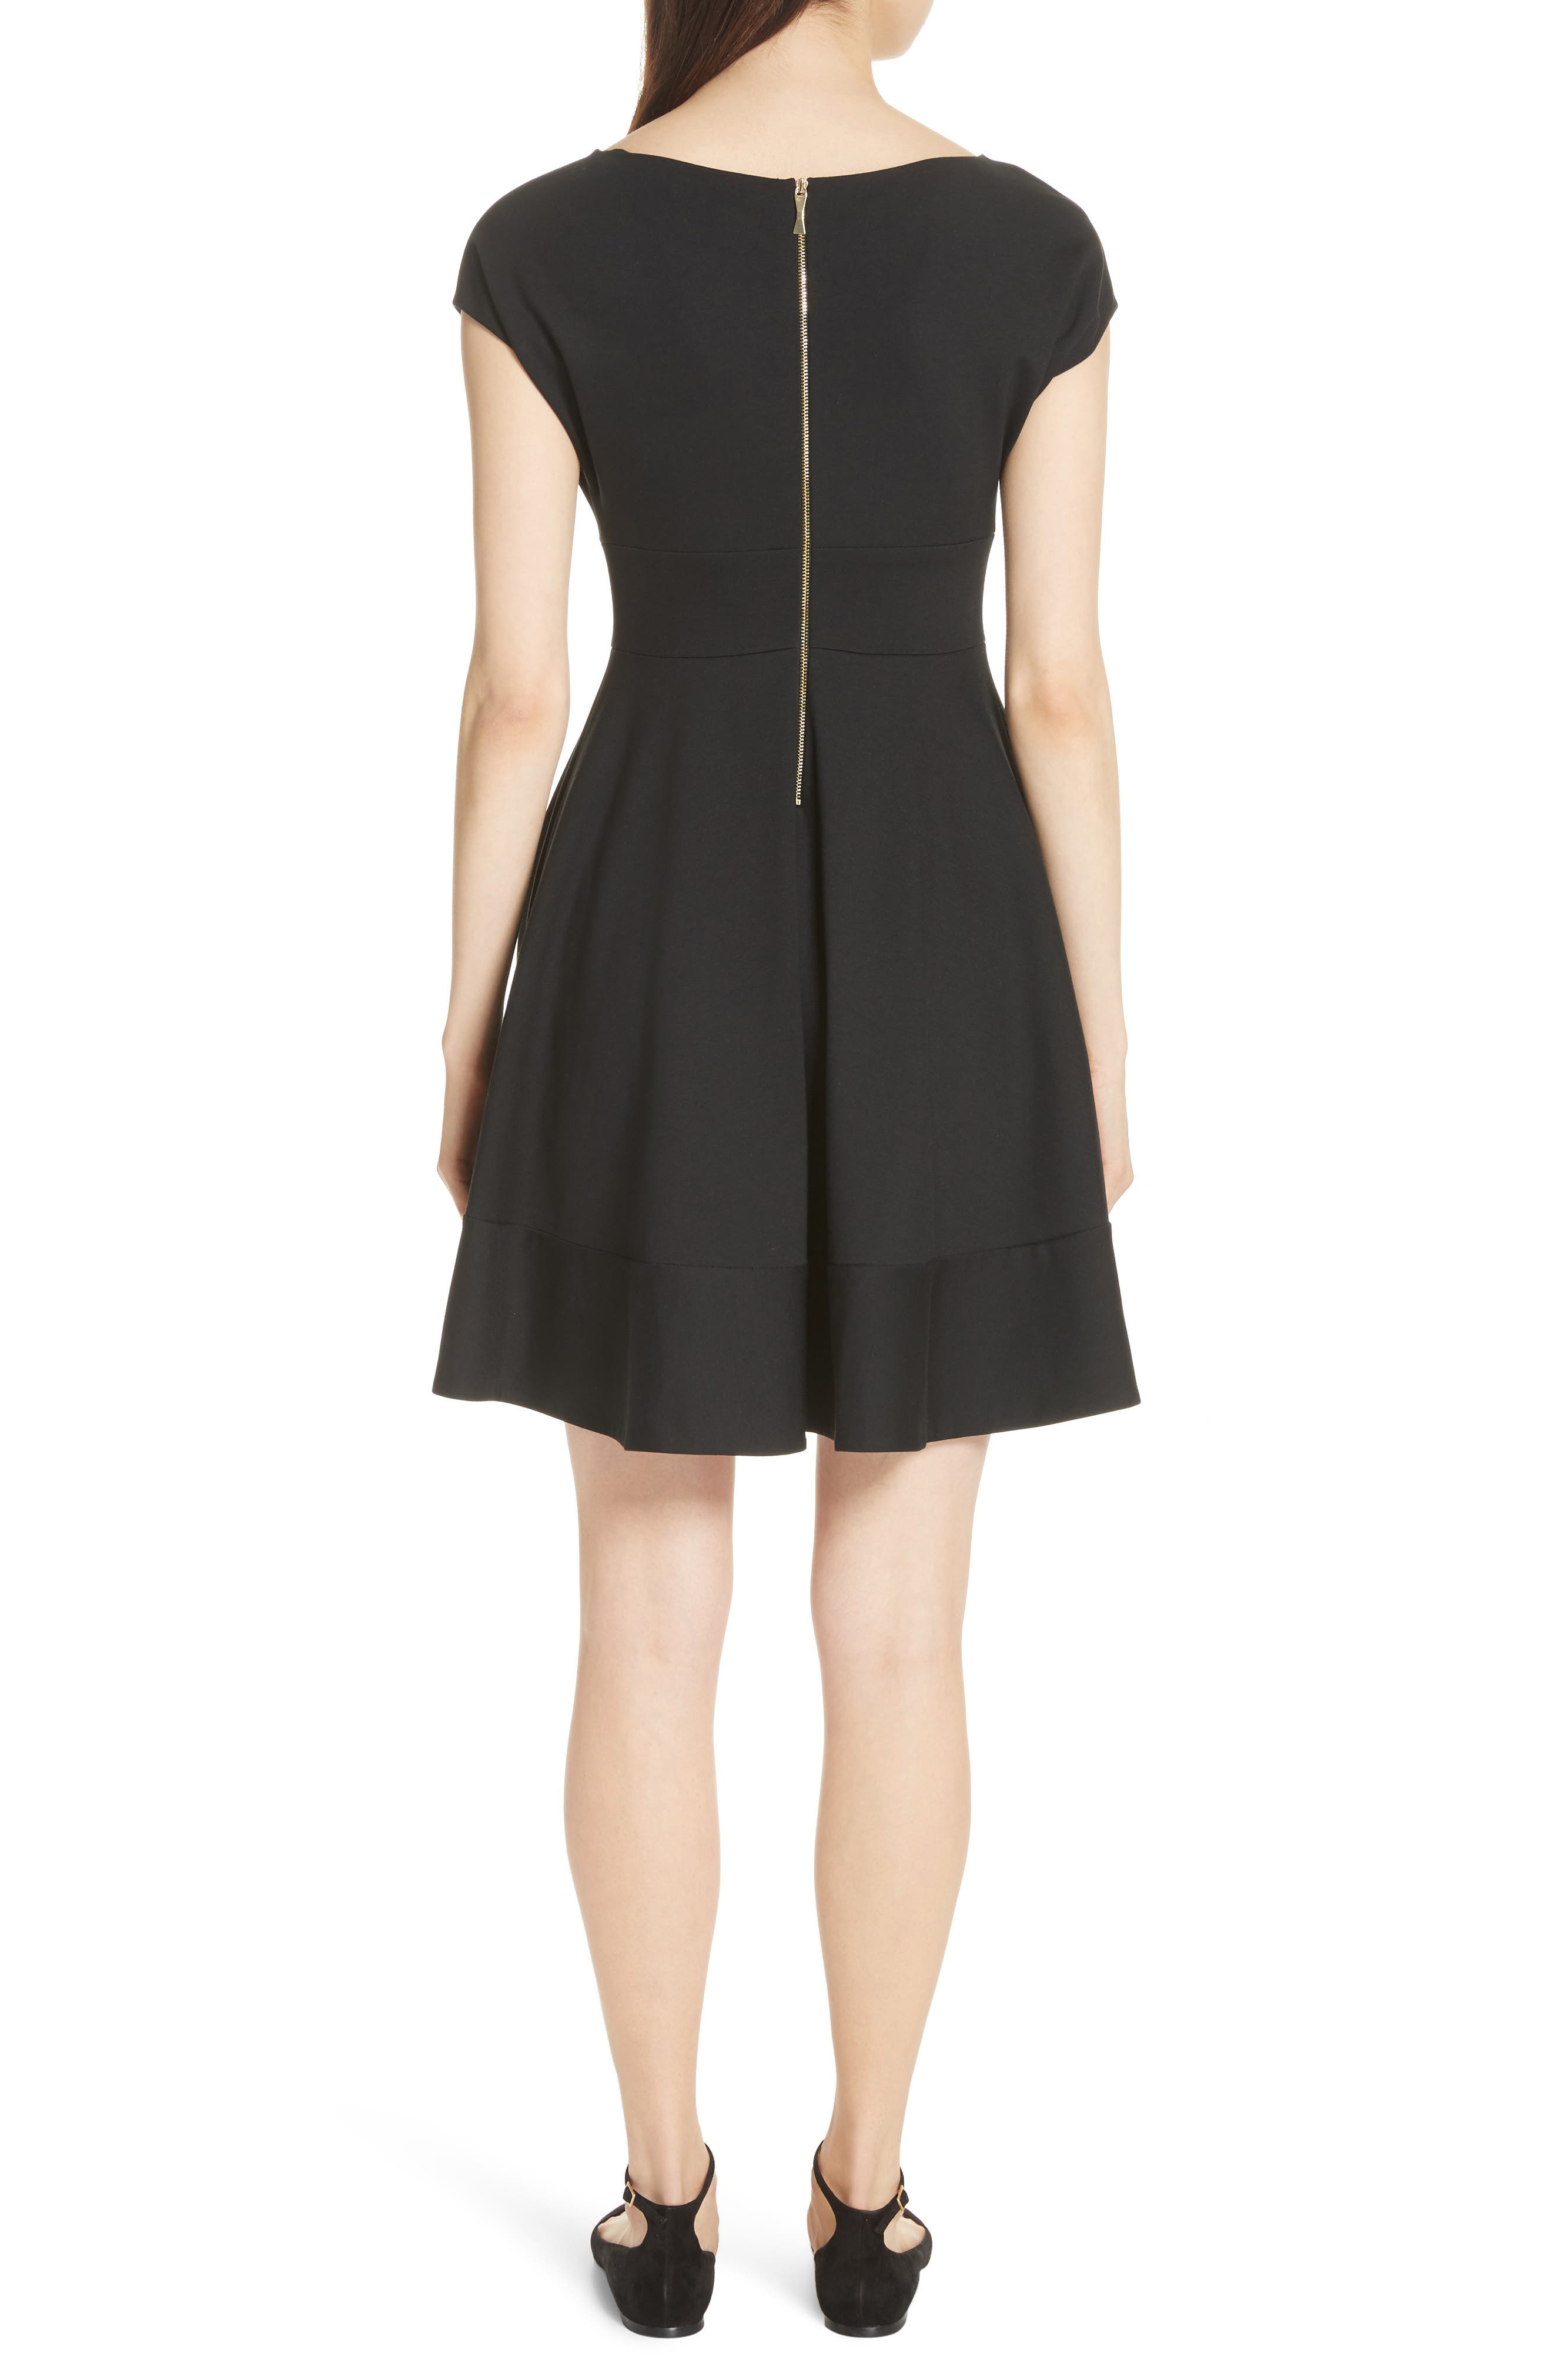 KATE SPADE NEW YORK, ponte fiorella fit & flare dress, Alternate thumbnail 2, color, BLACK